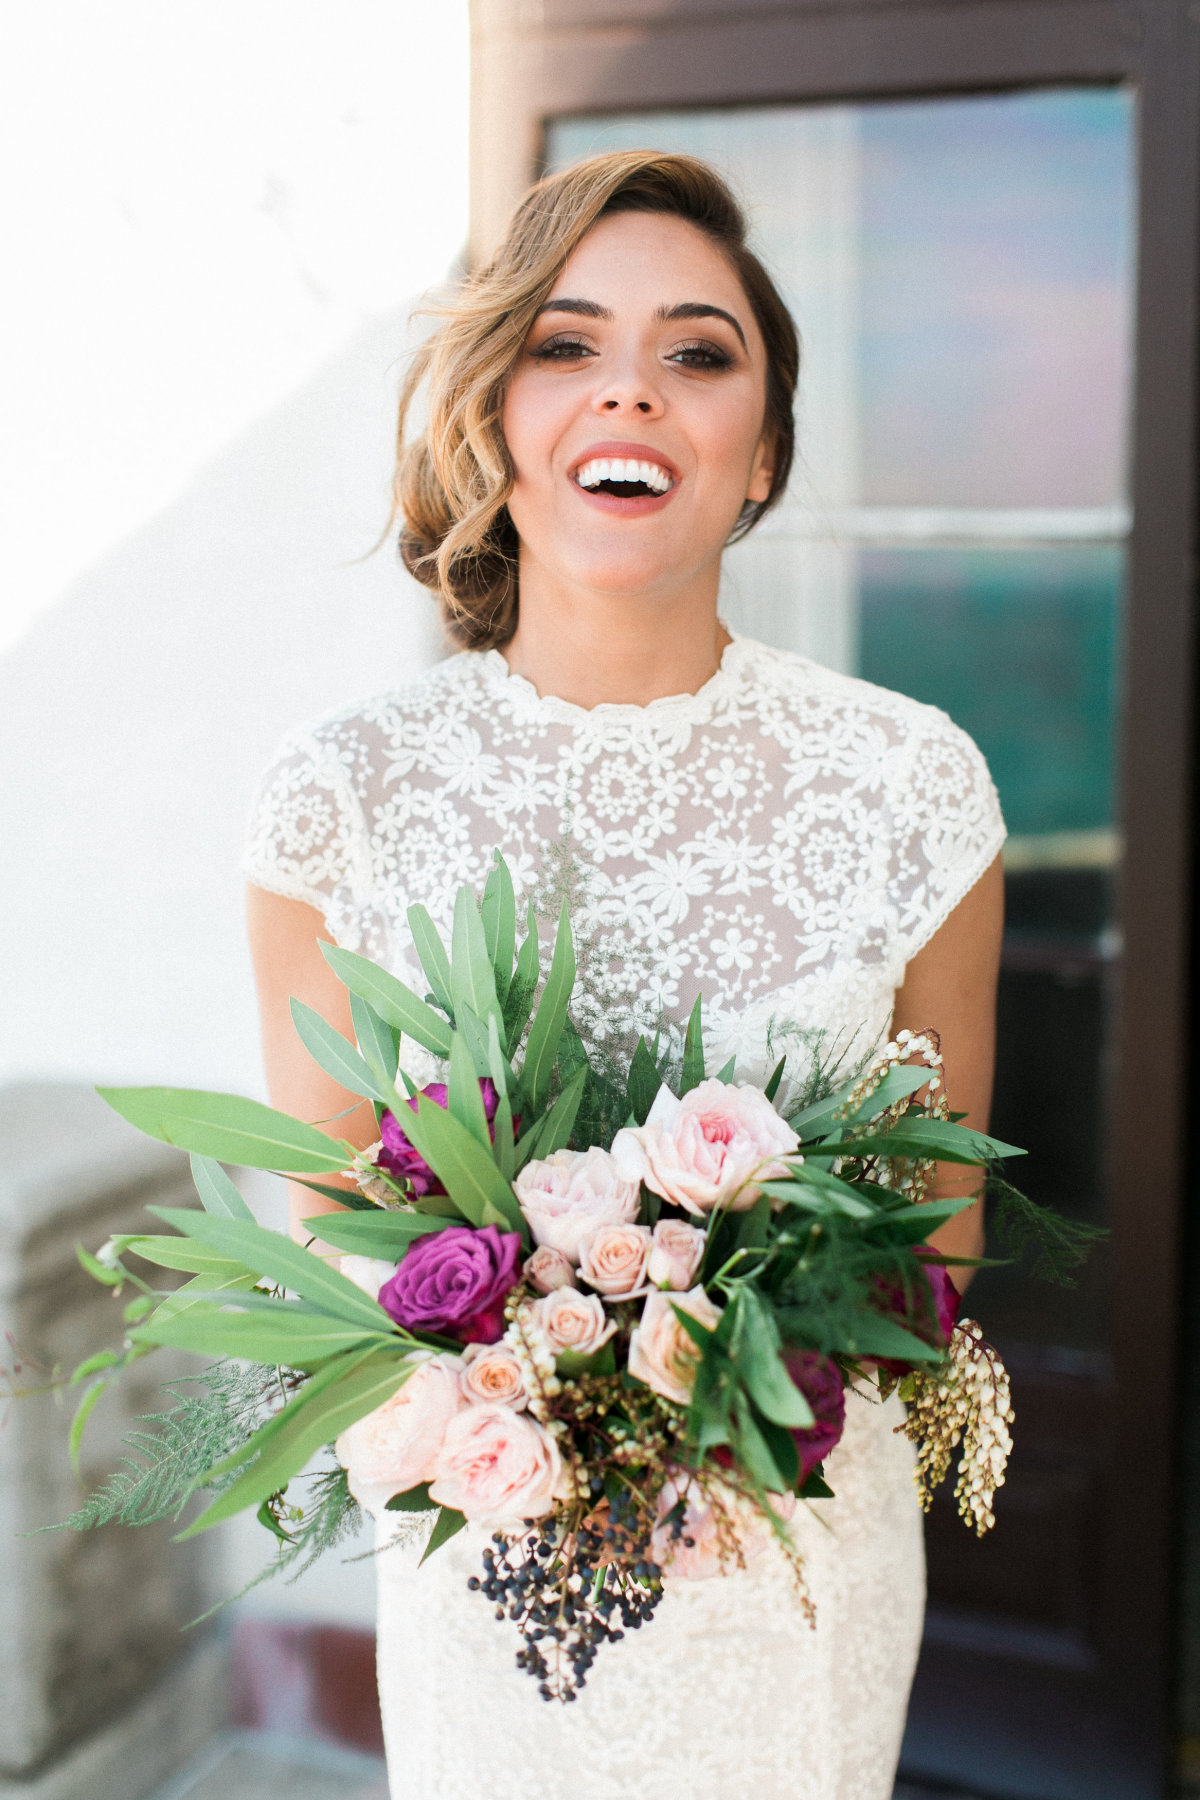 the-alice-lace-gown-featured-in-this-seaside-wedding-inspiration-editorial